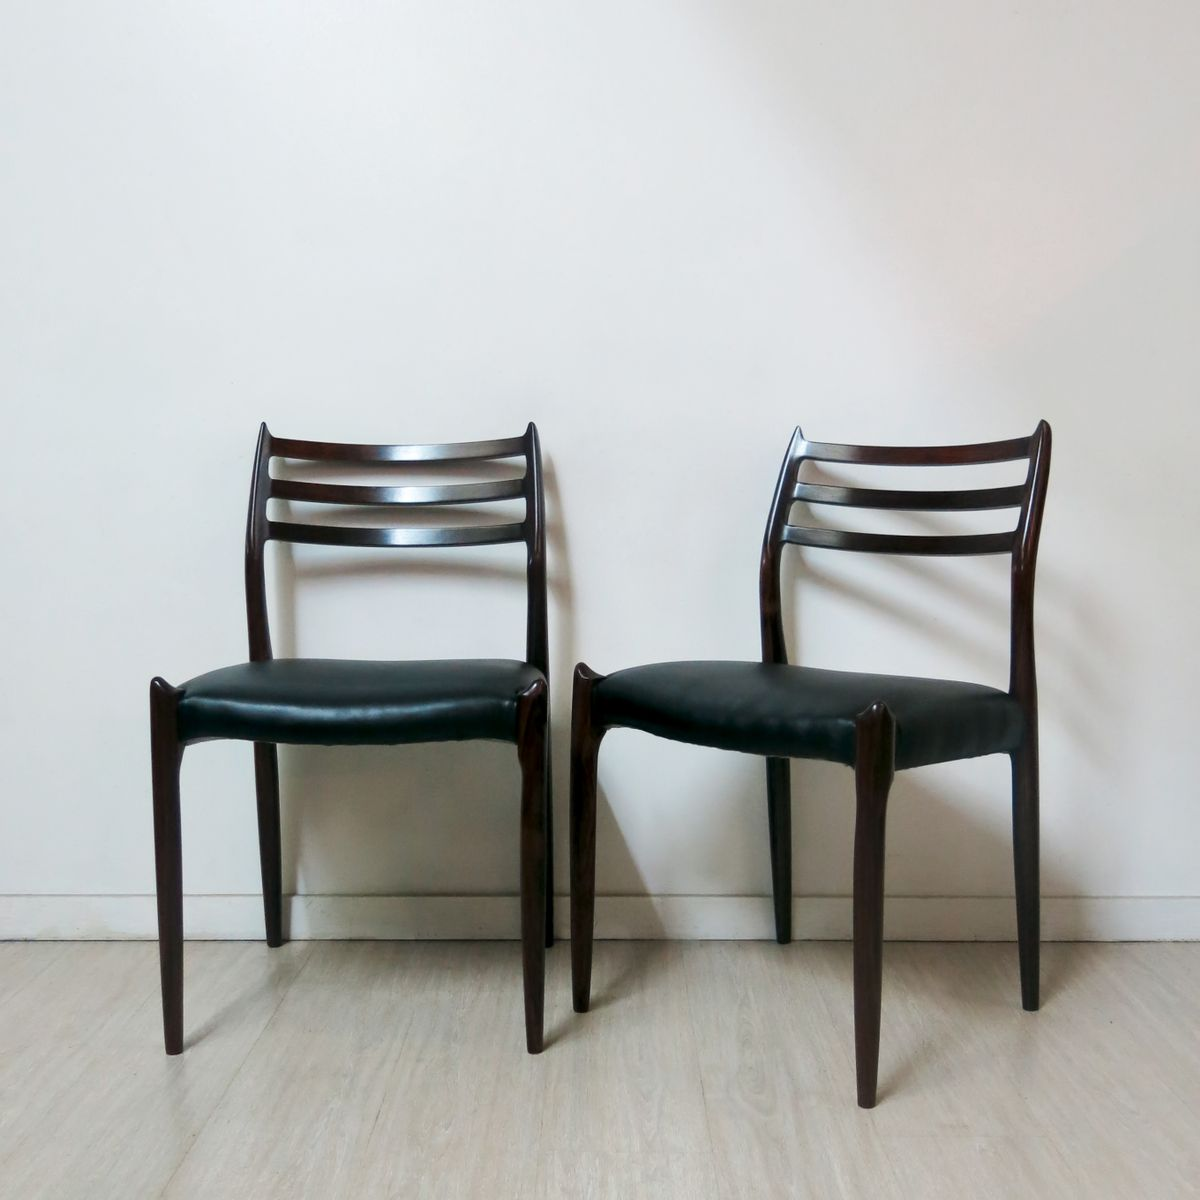 Dining chairs by niels o møller for j l